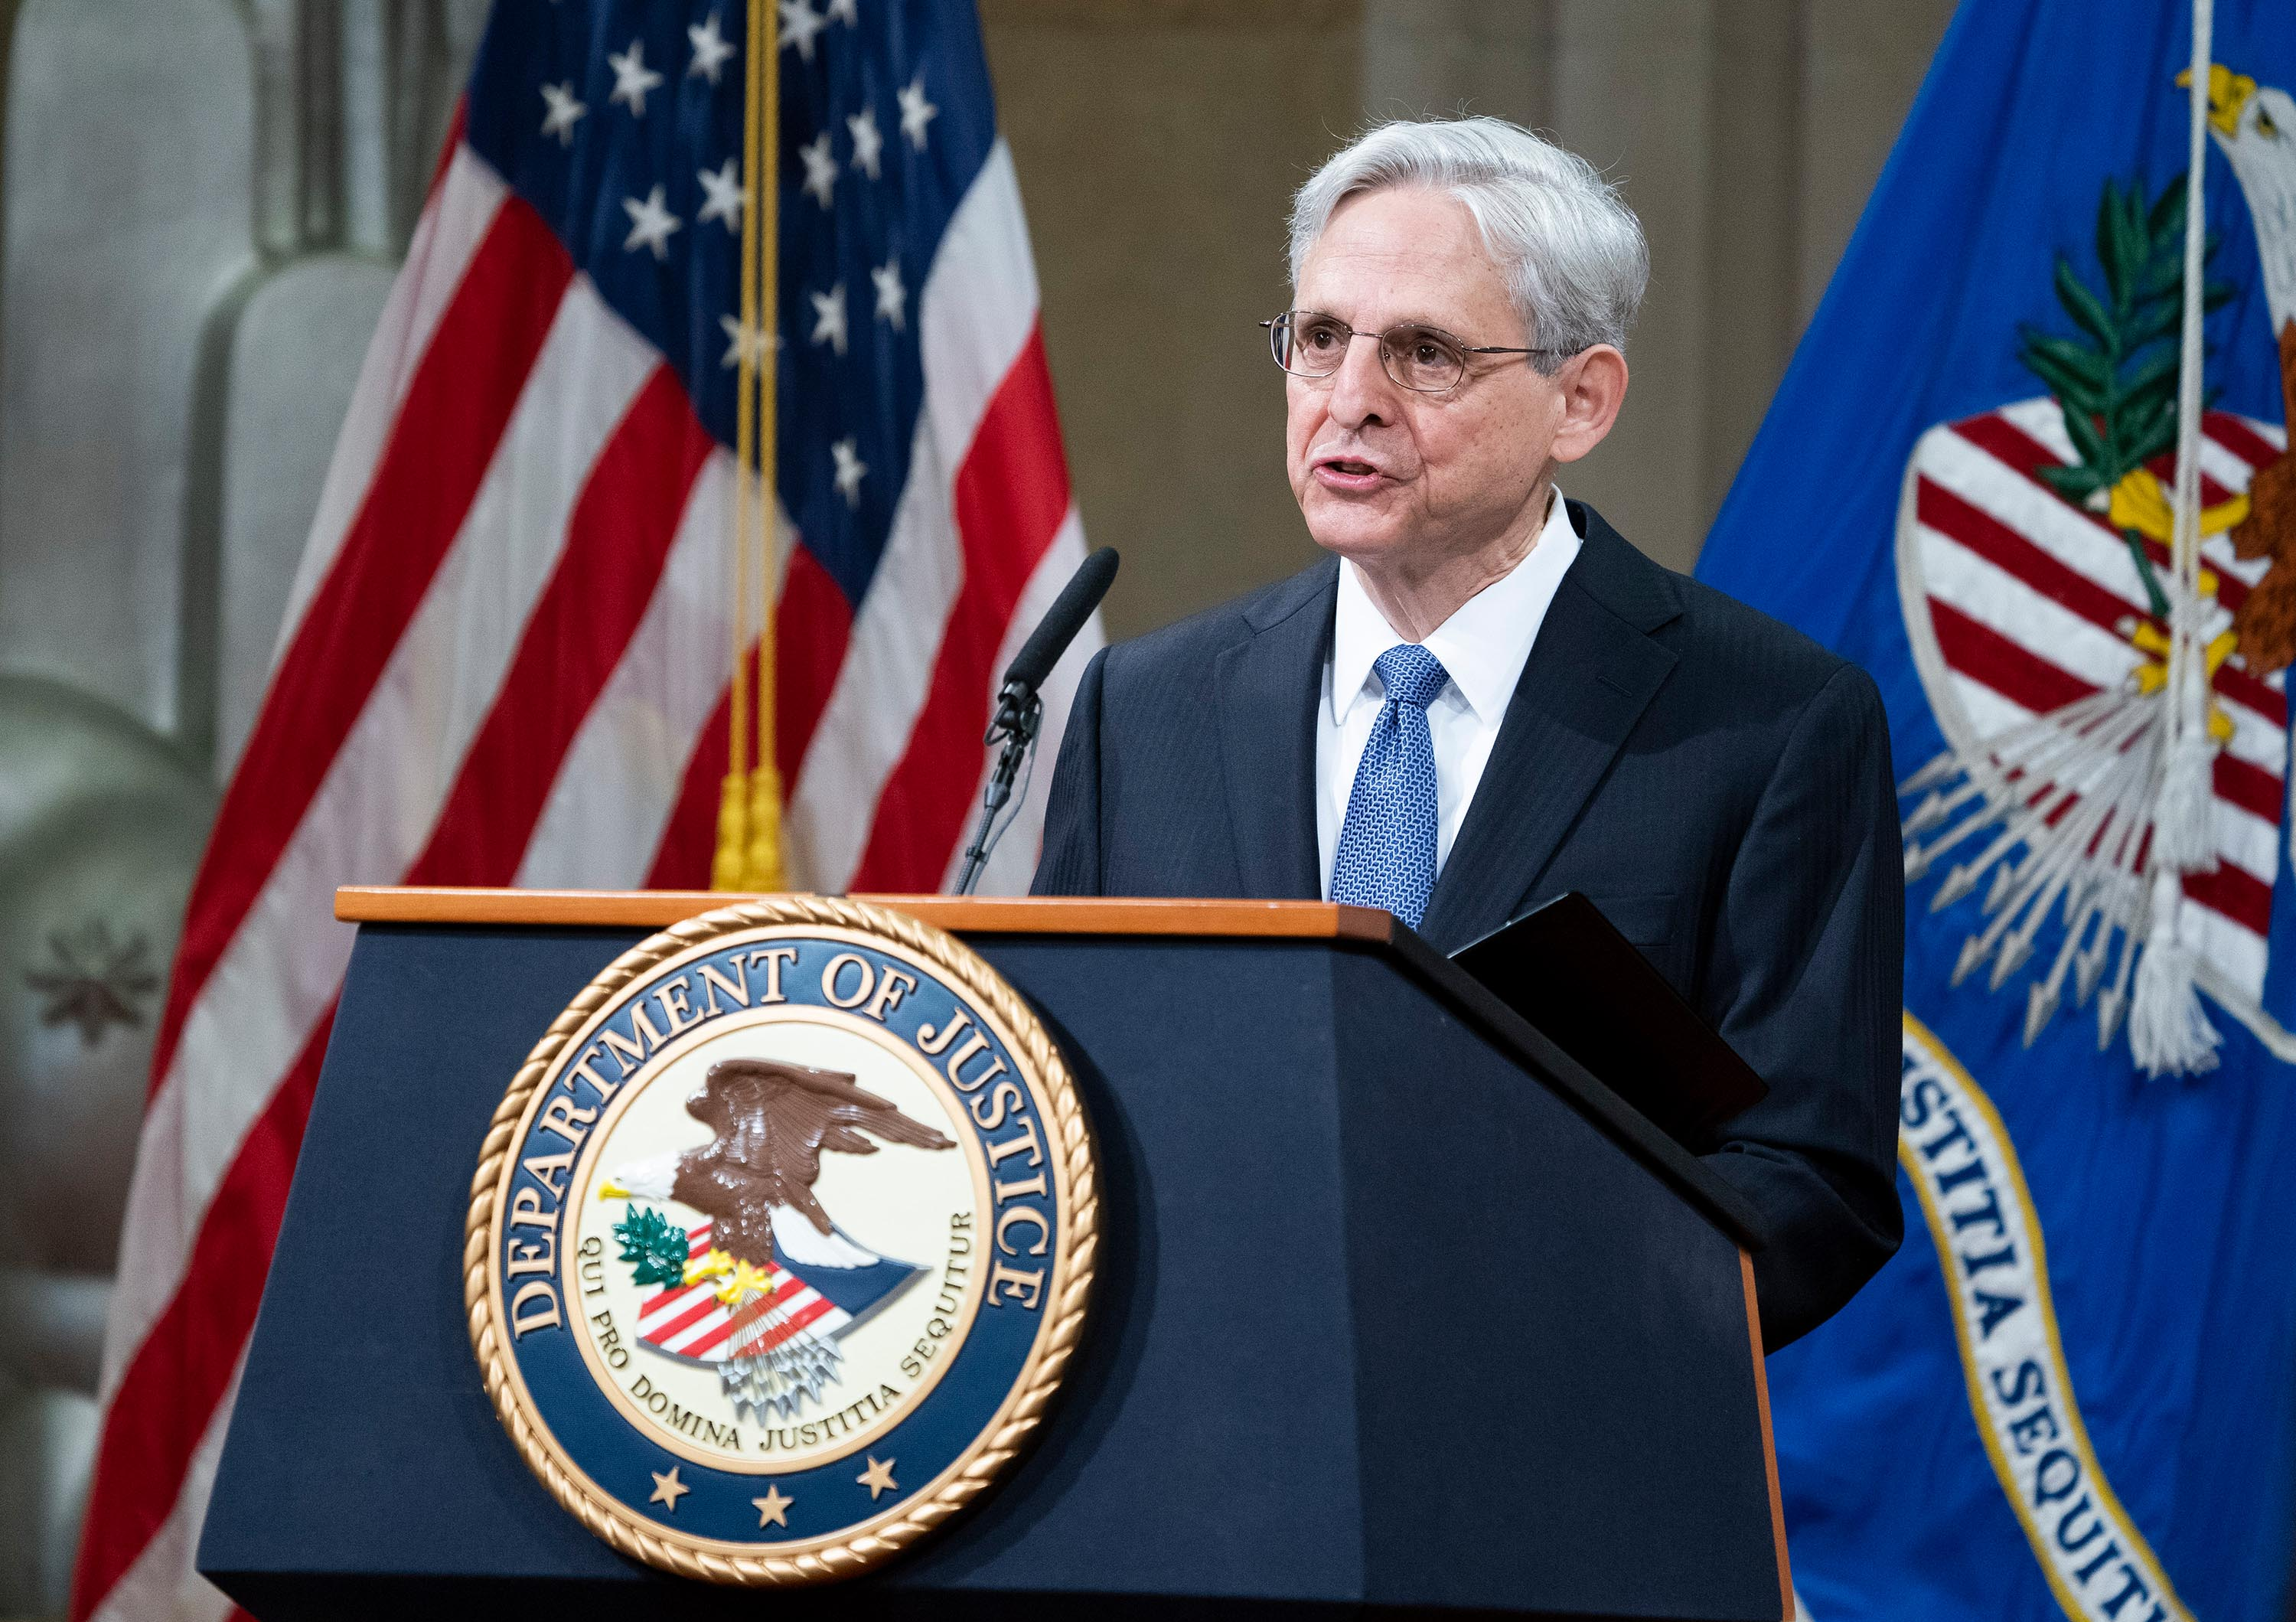 AG Garland ends restrictions on consent decrees, aims to hold troubled police departments accountable